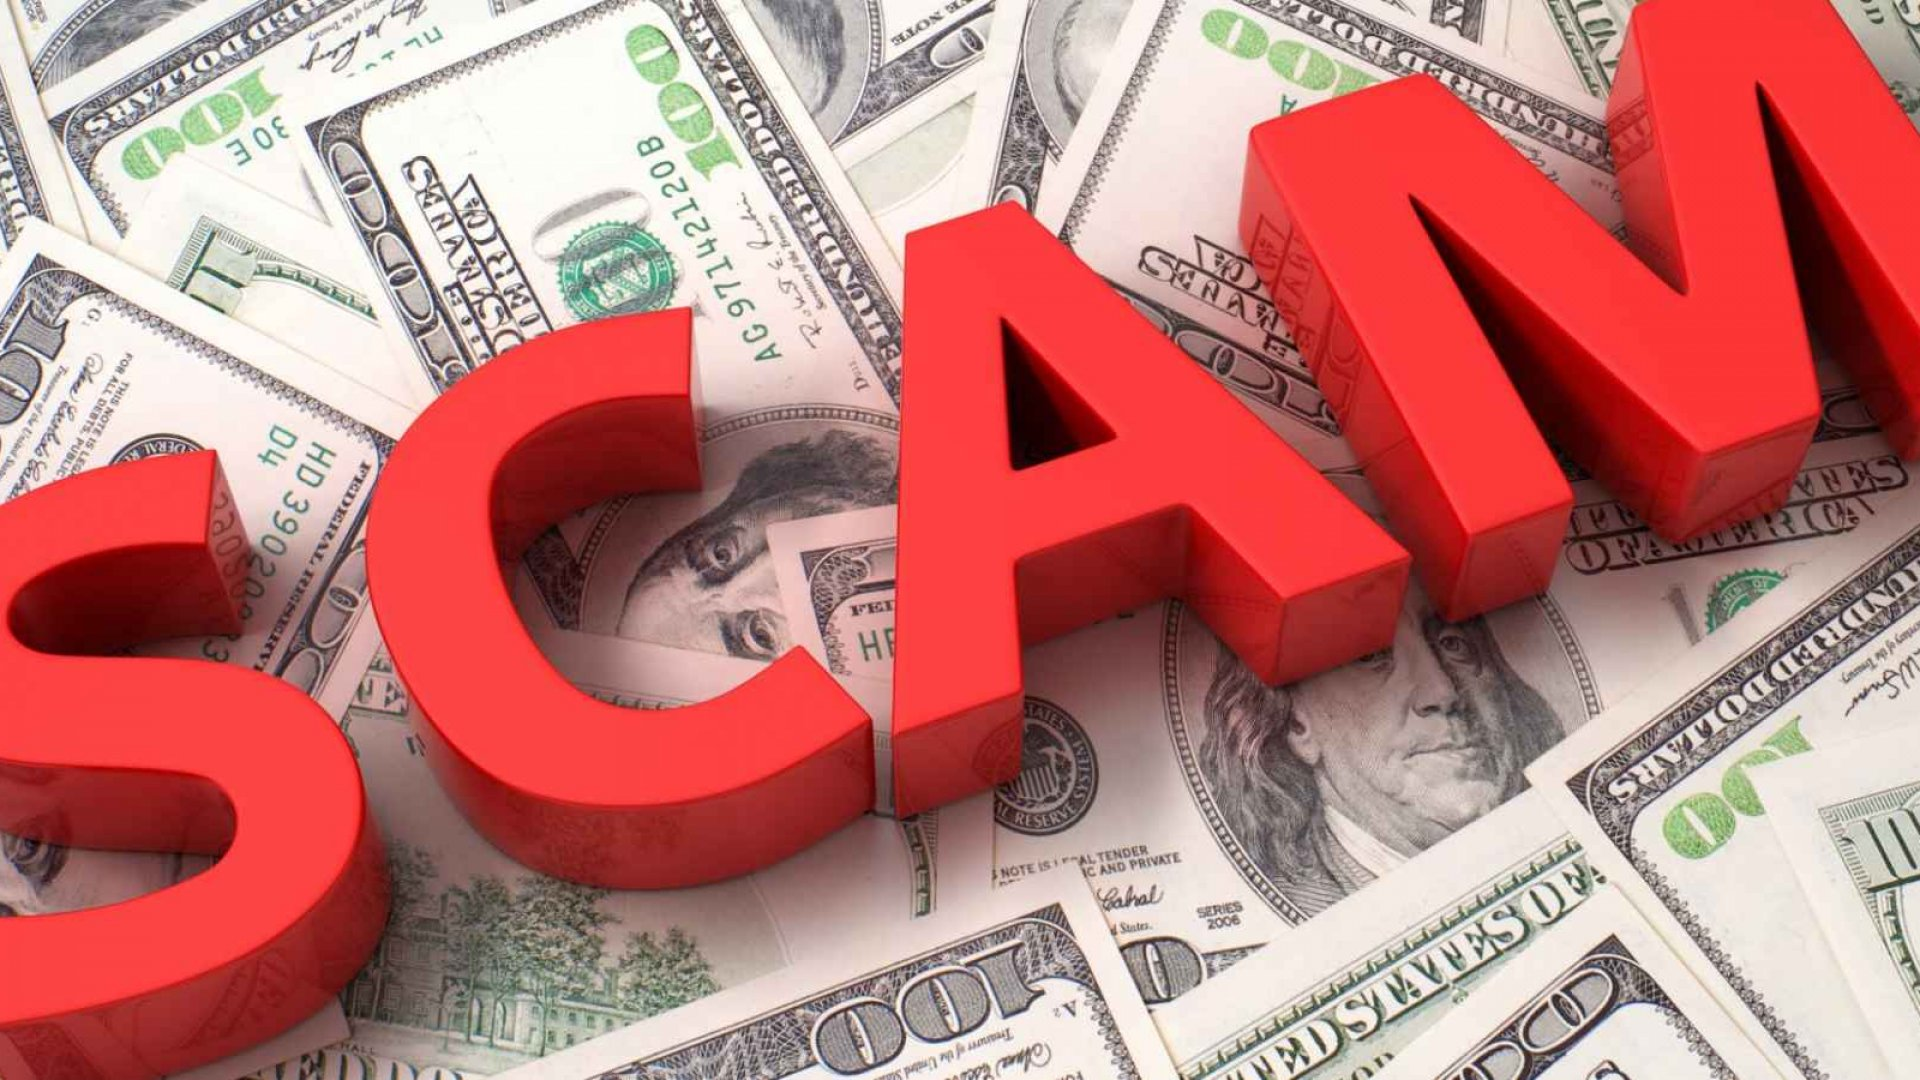 Millennials and Gen-Xers Beware: You are More Vulnerable to Scams than Baby Boomers